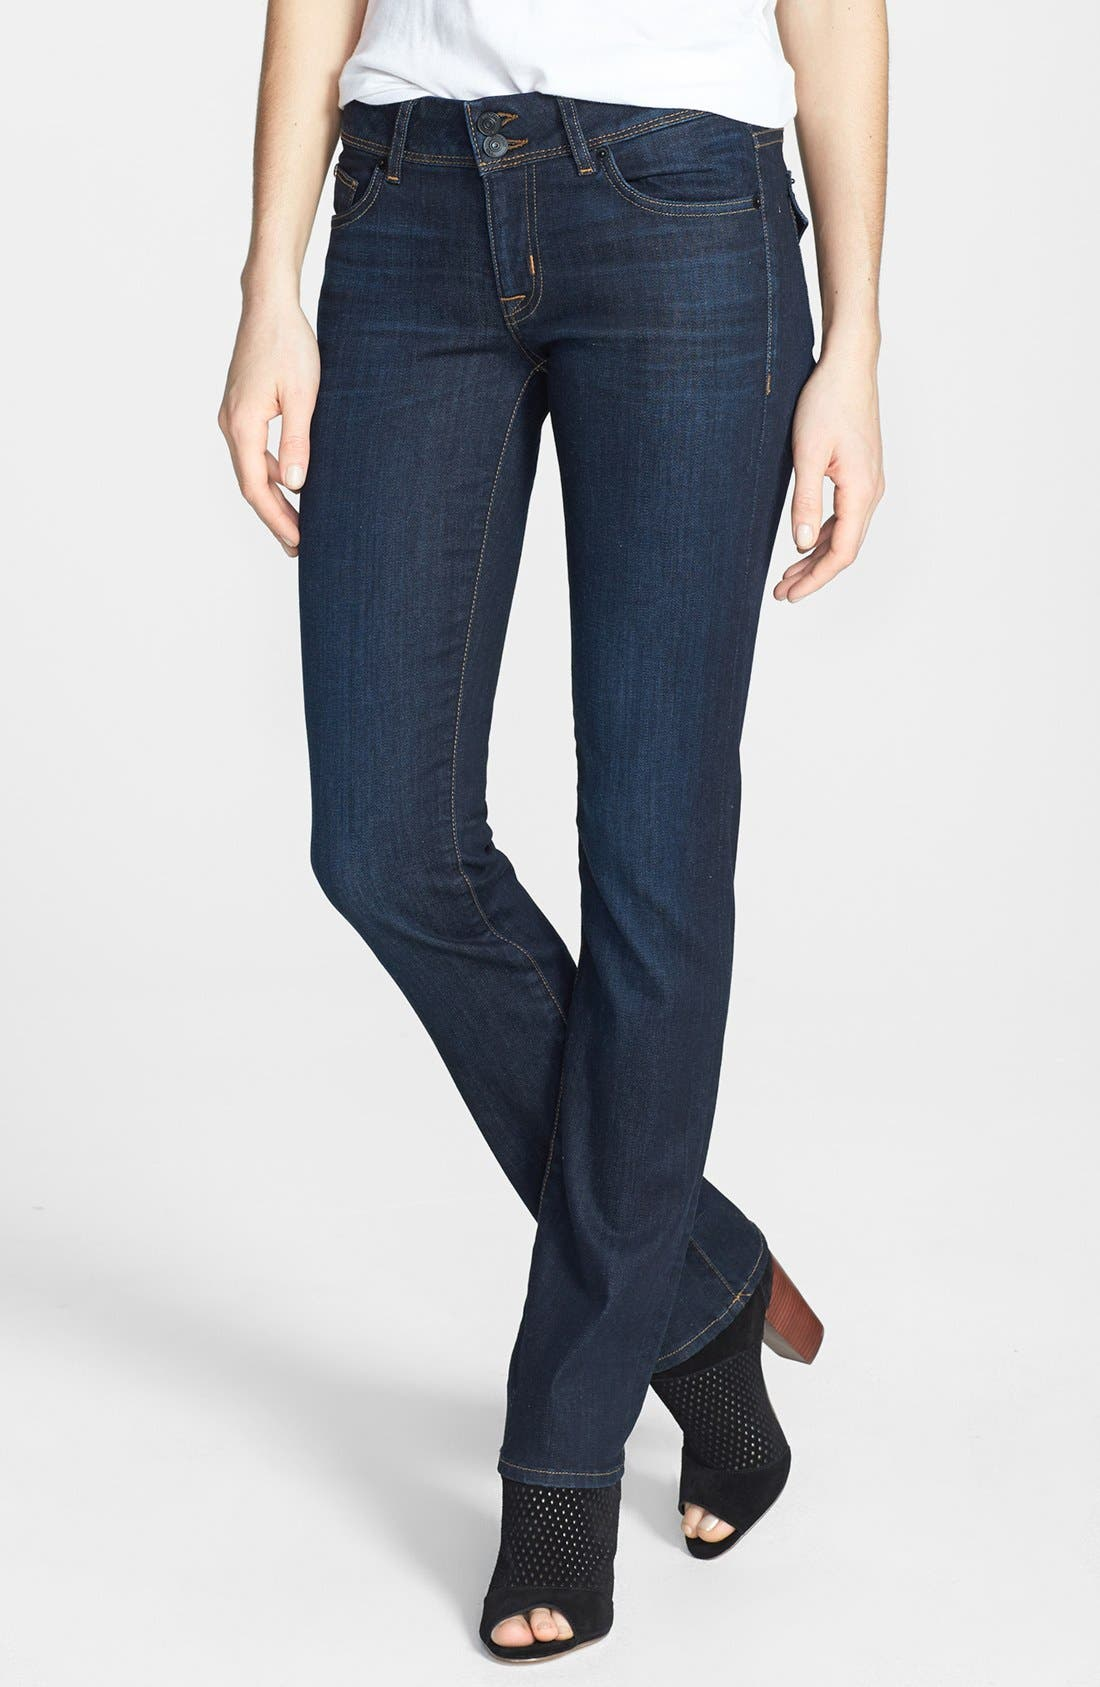 Main Image - Hudson Jeans 'Ginny' Straight Leg Jeans (London Calling)